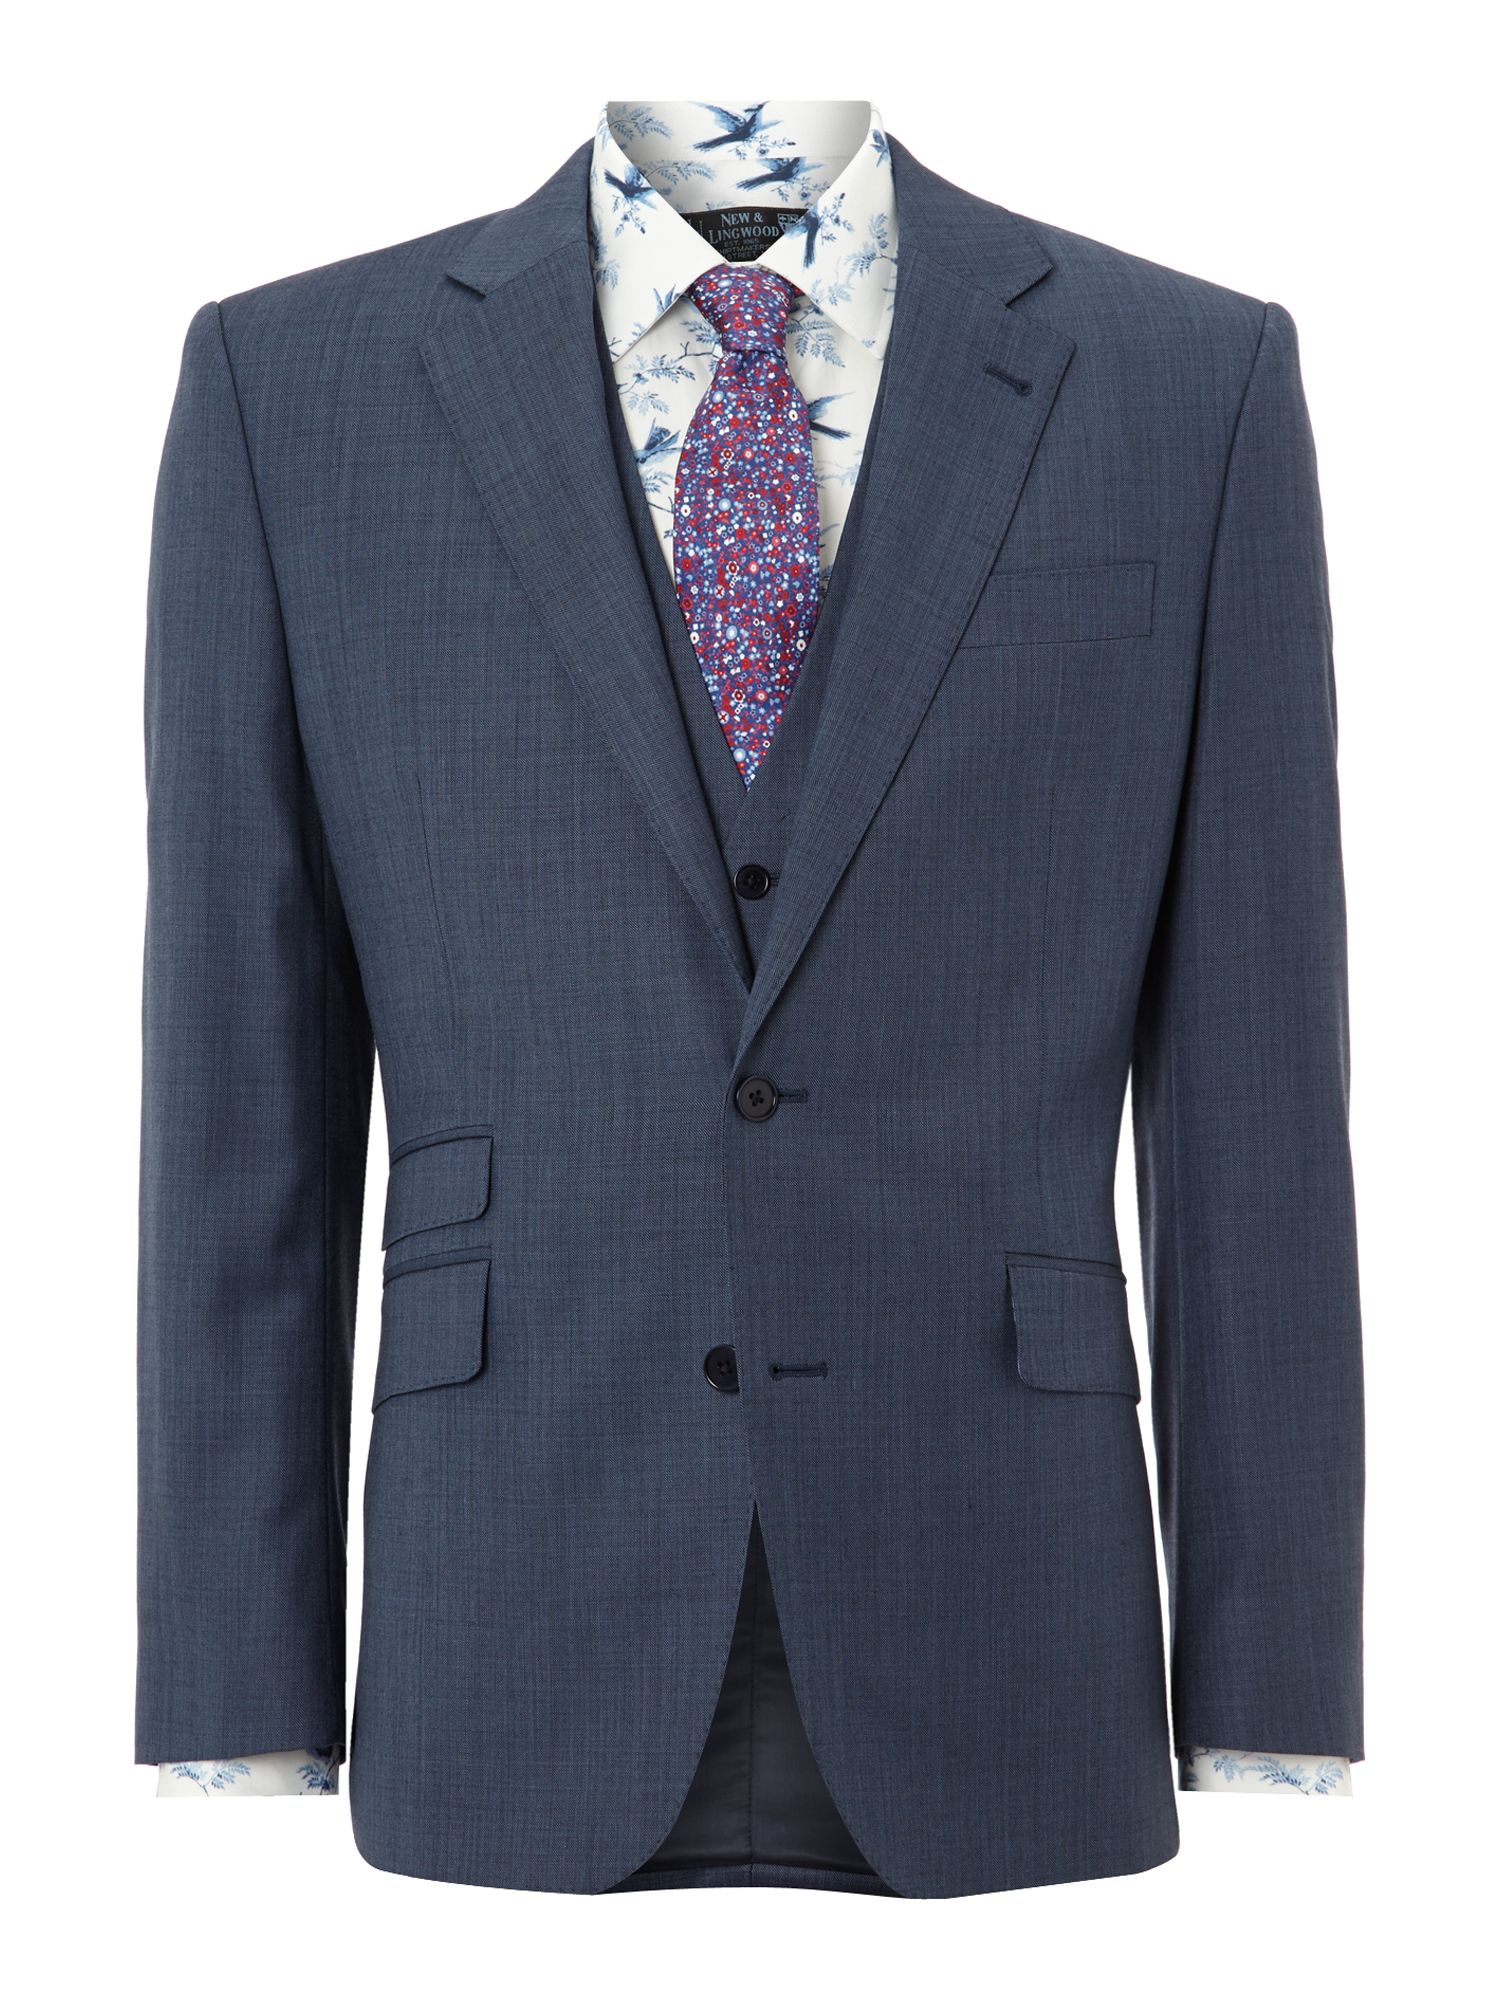 Coledale End on End Ticket Pocket Suit Jacket